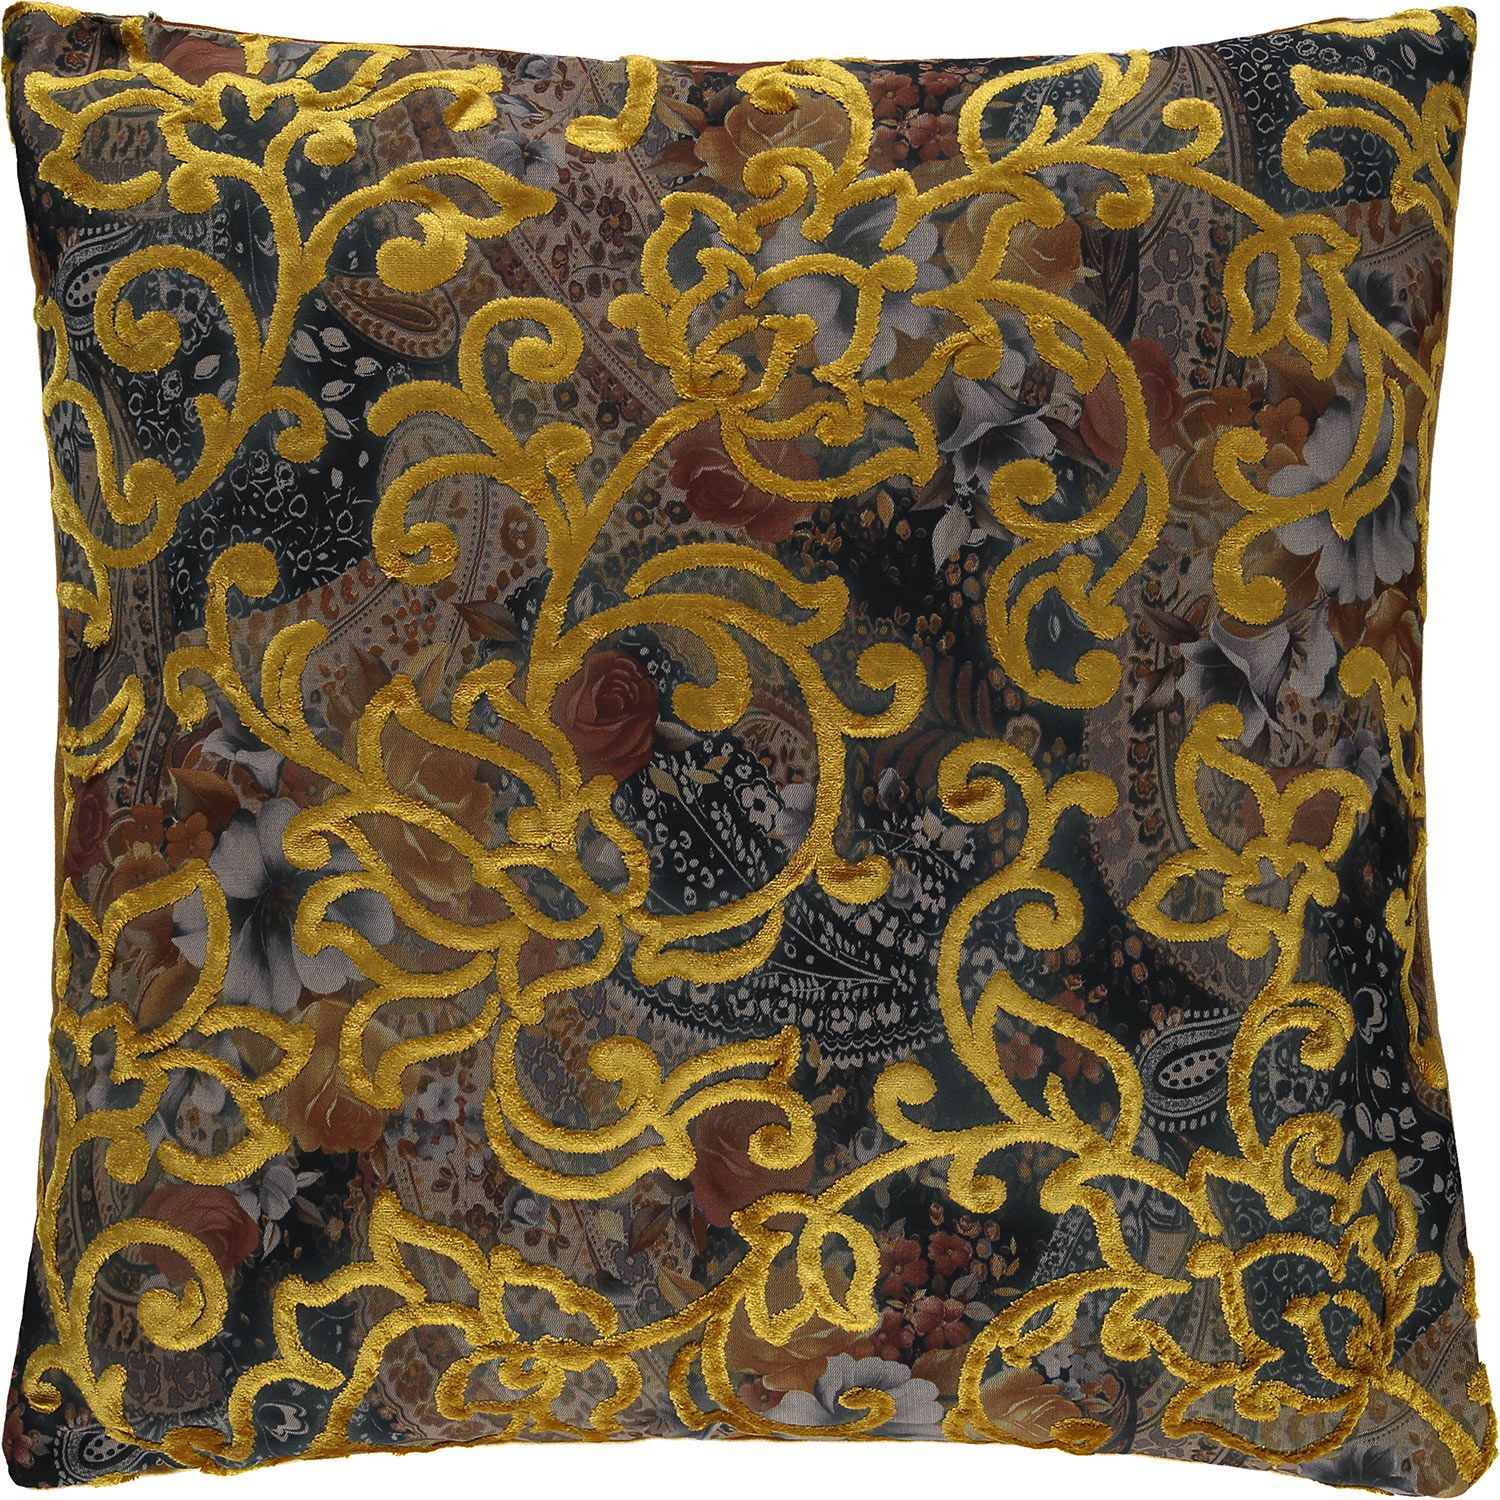 """The Cushion Factory"" Yellow Velvet Floral Cushion"